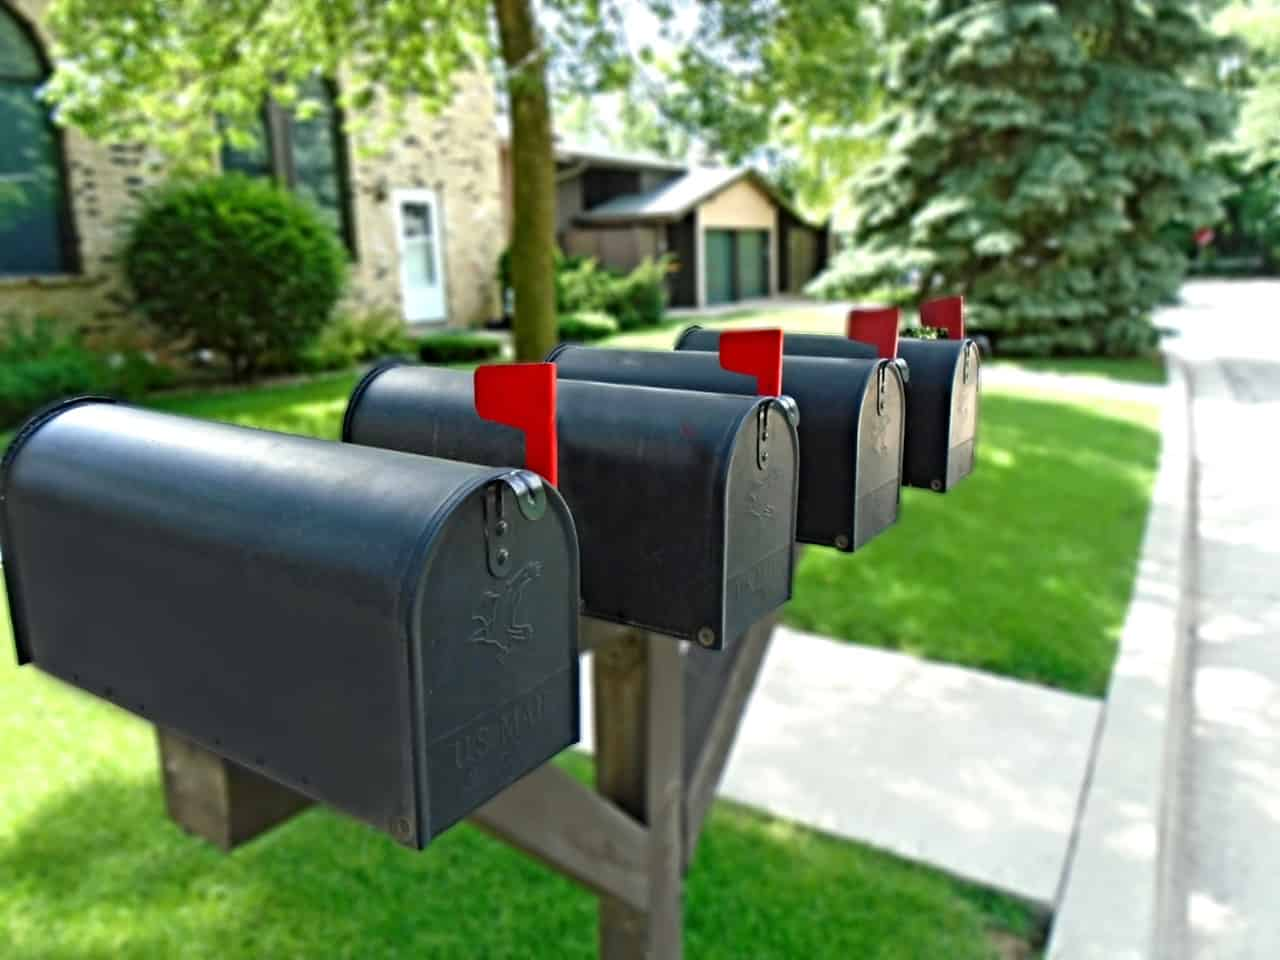 How to Install a New Letterbox 6 Dos and Don'ts